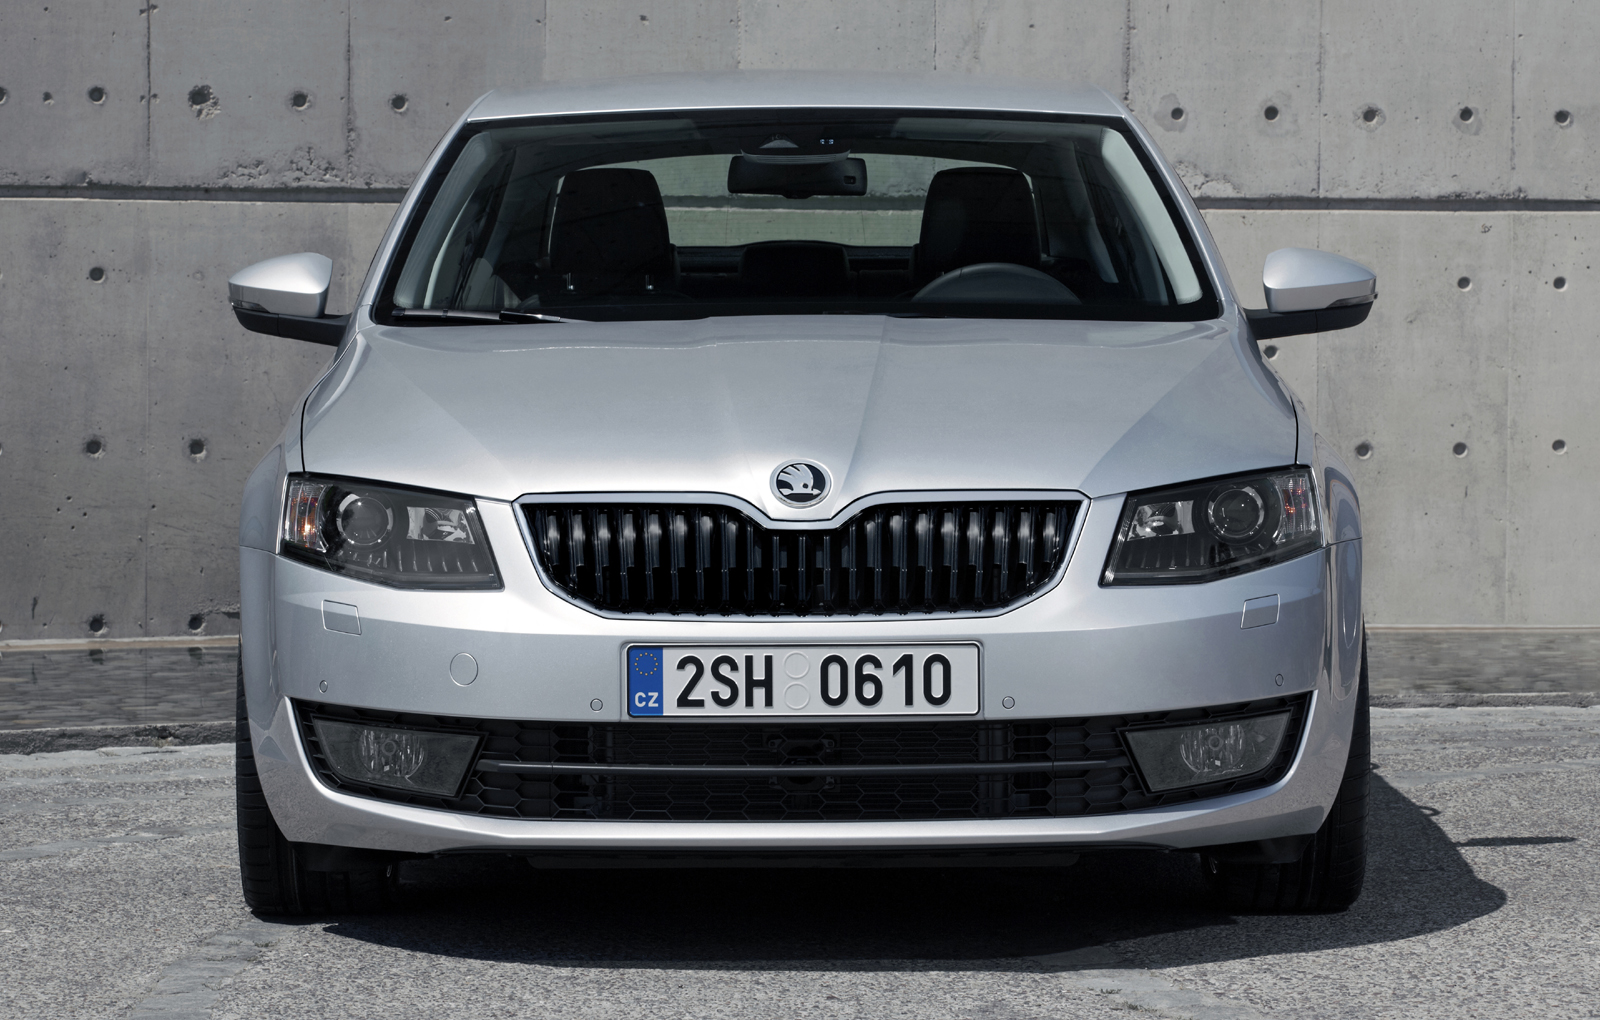 skoda octavia iii 1 4 tsi 140 hp acceleration tests. Black Bedroom Furniture Sets. Home Design Ideas